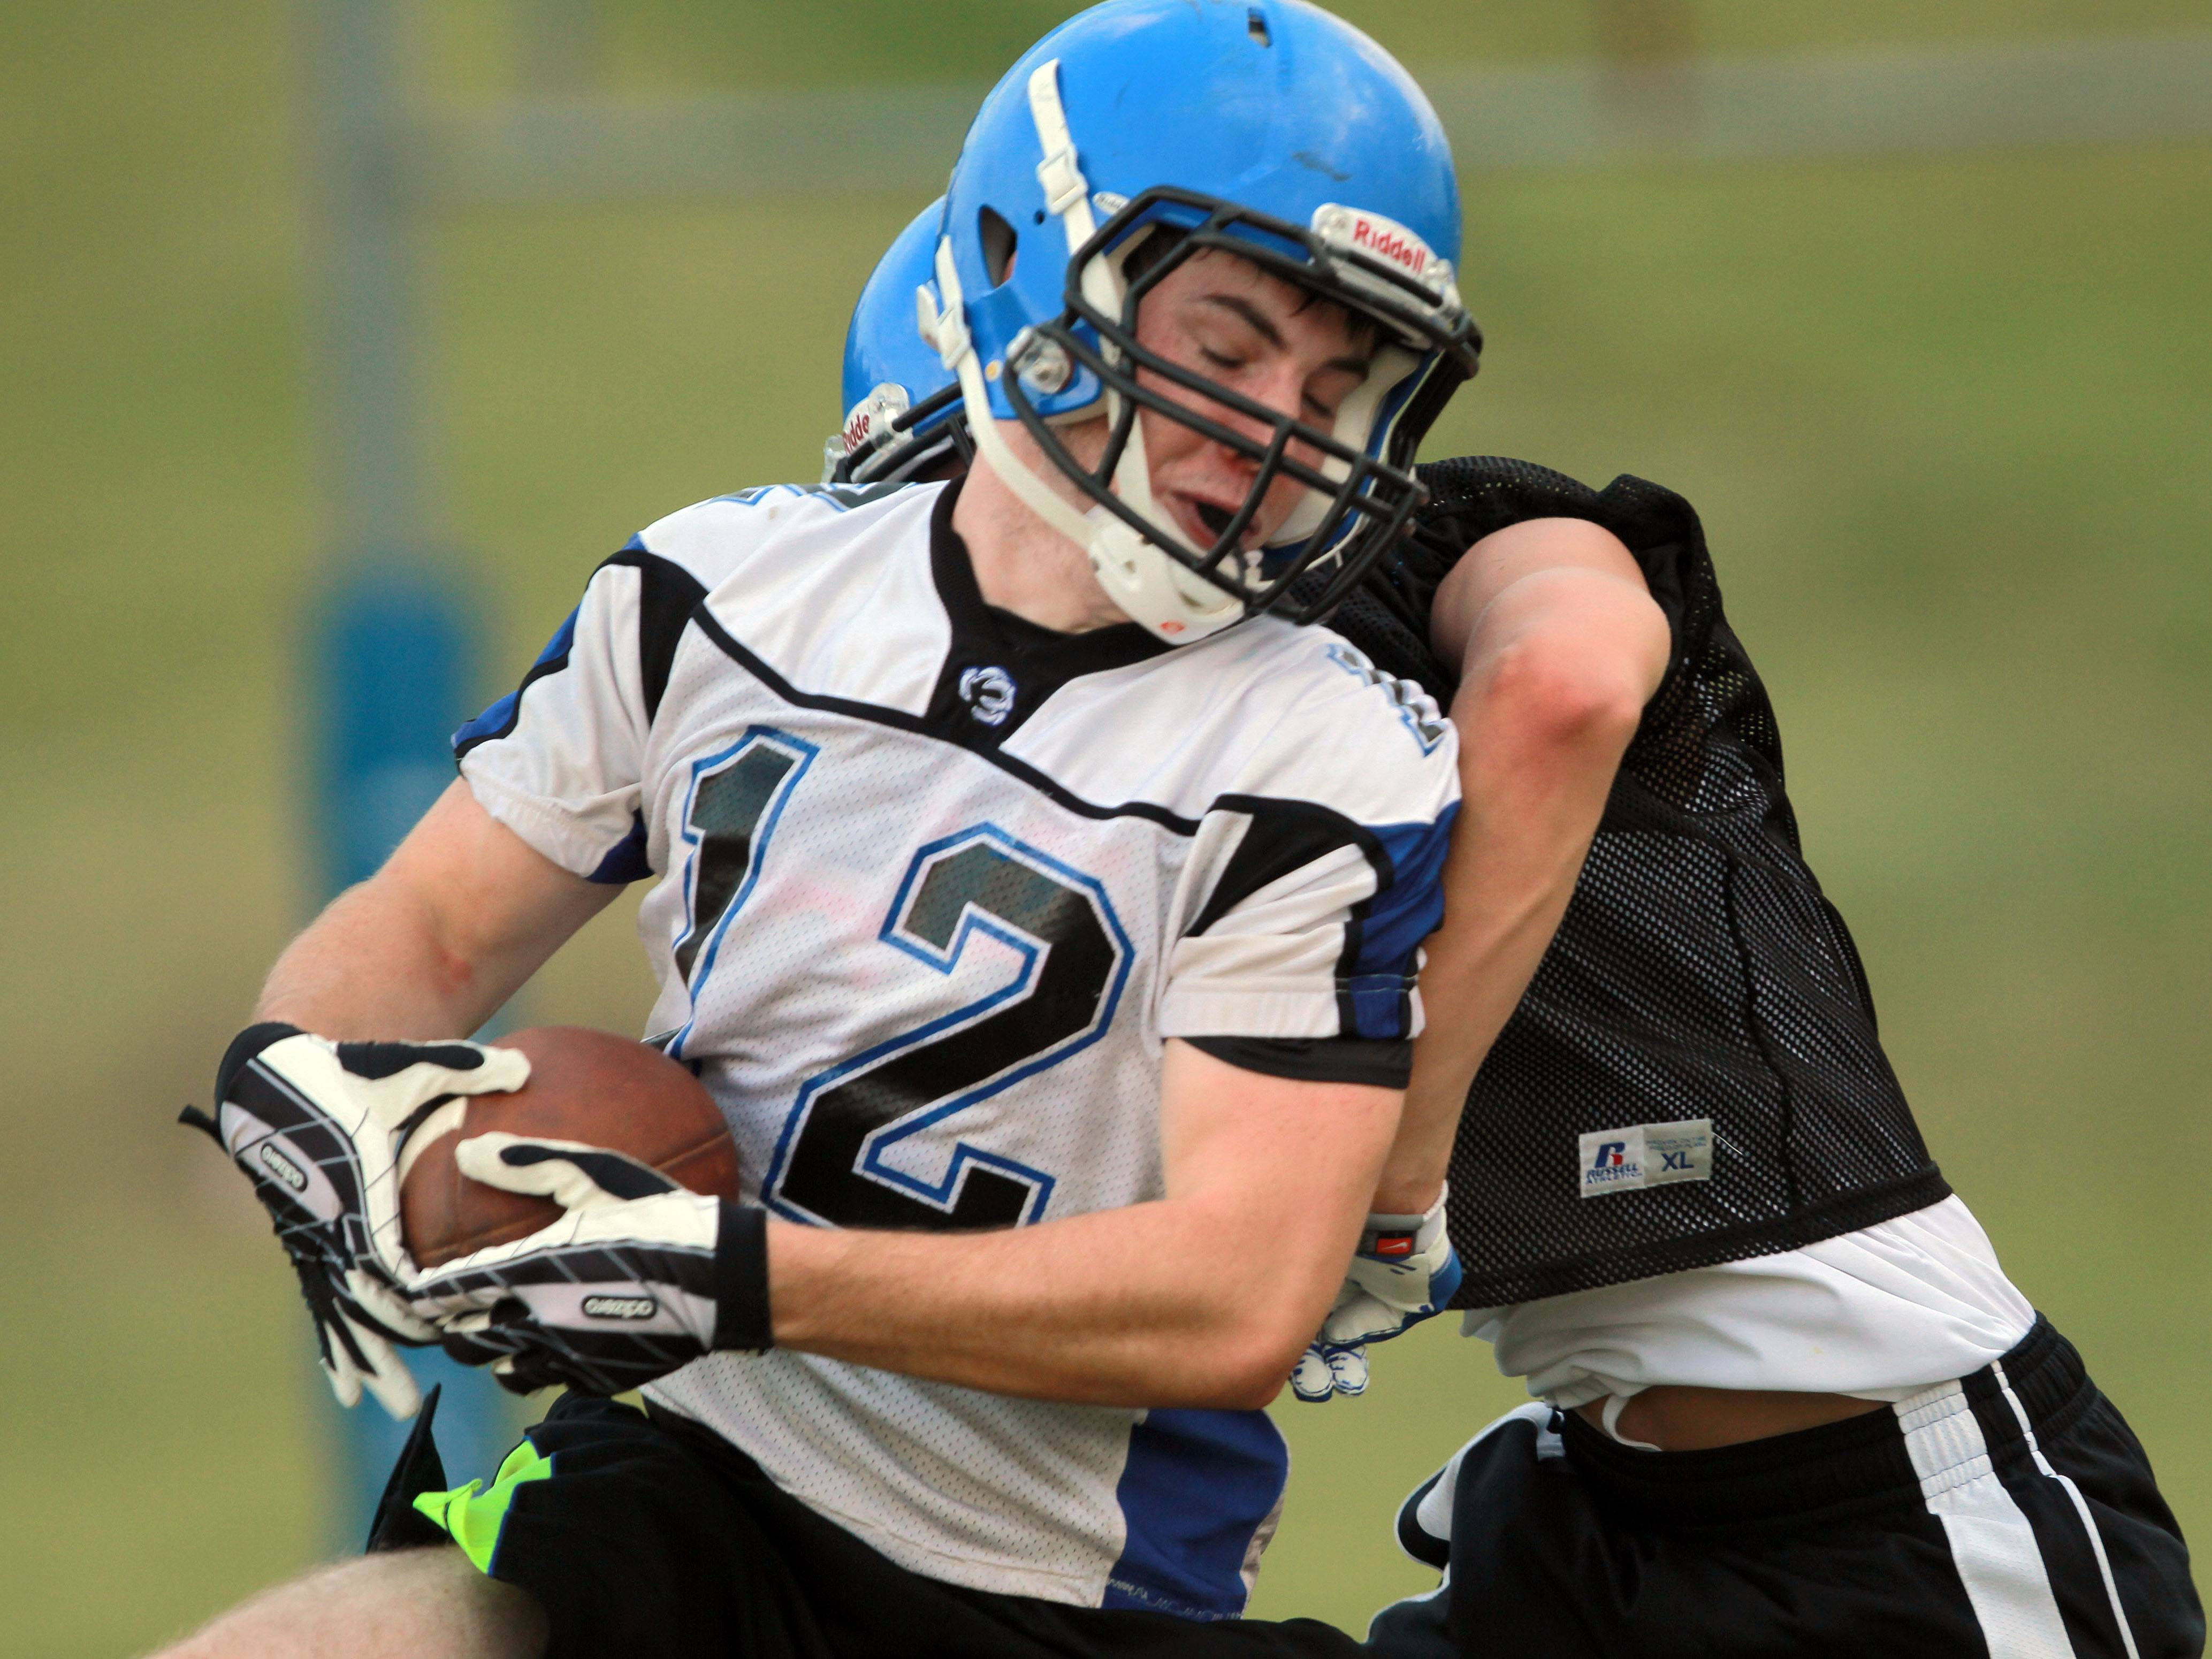 Andy Hughes makes a catch during football practice Monday at Lake Zurich.